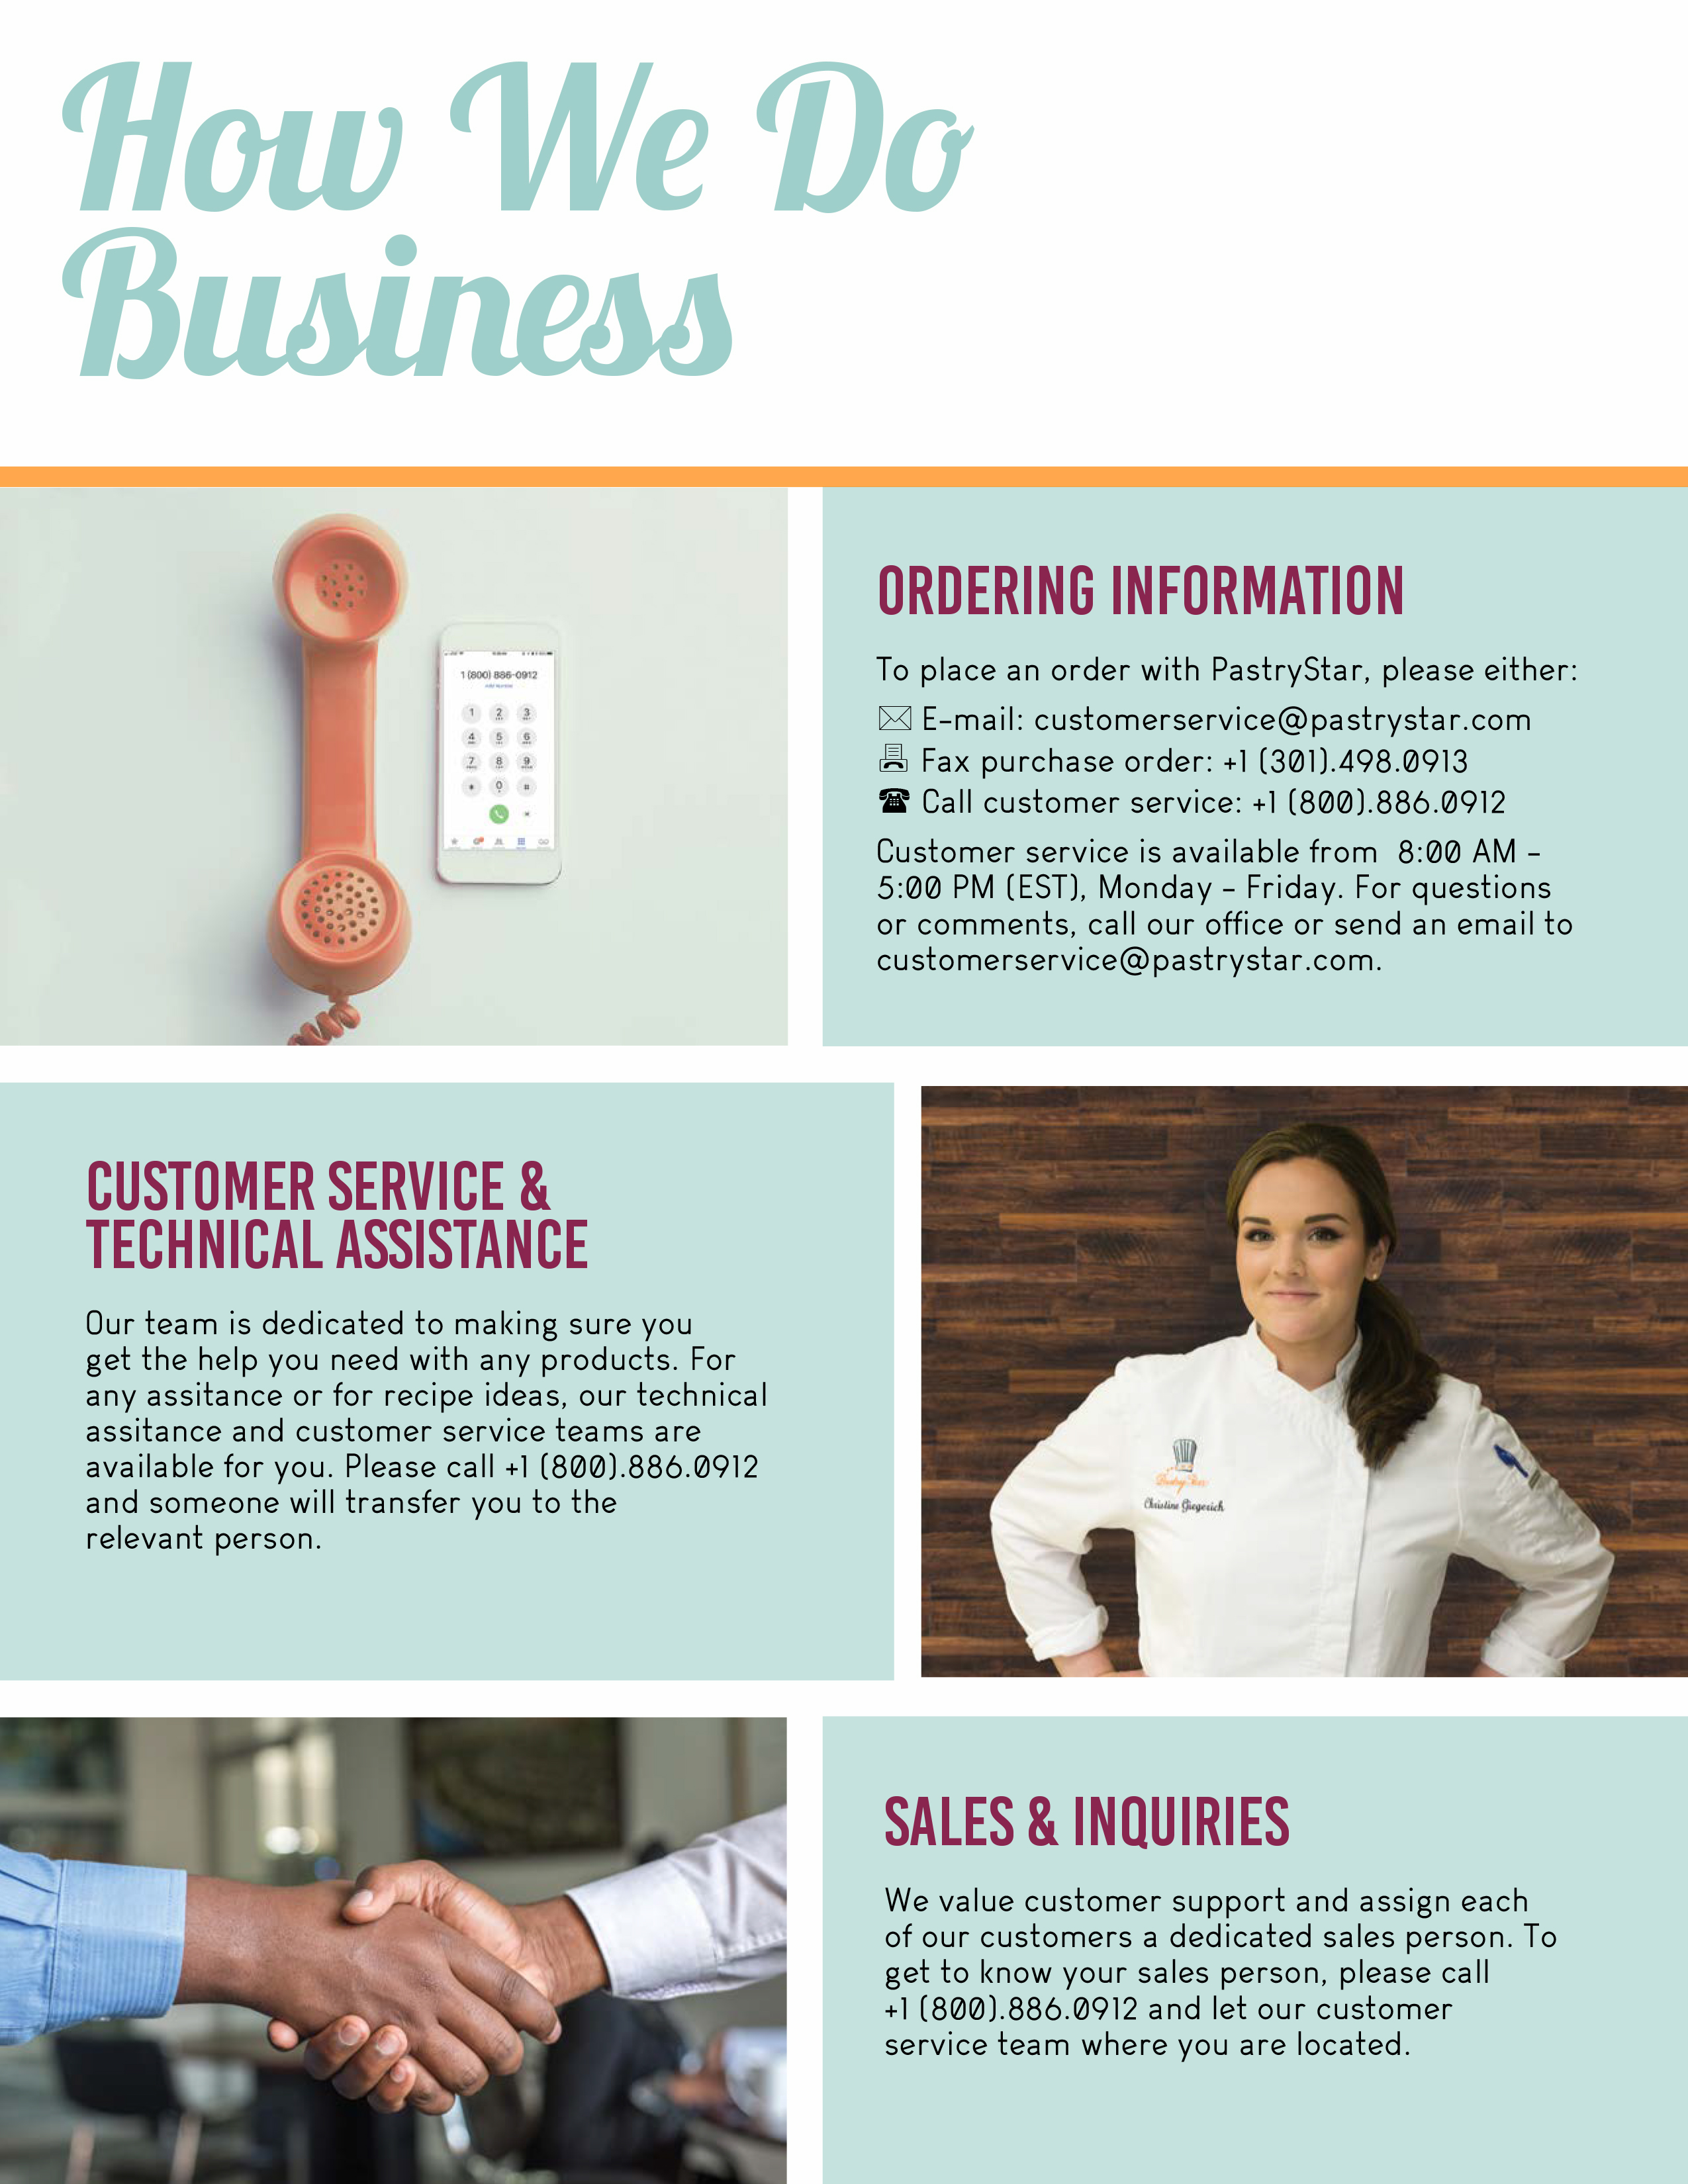 How We Do Business Page for About Us